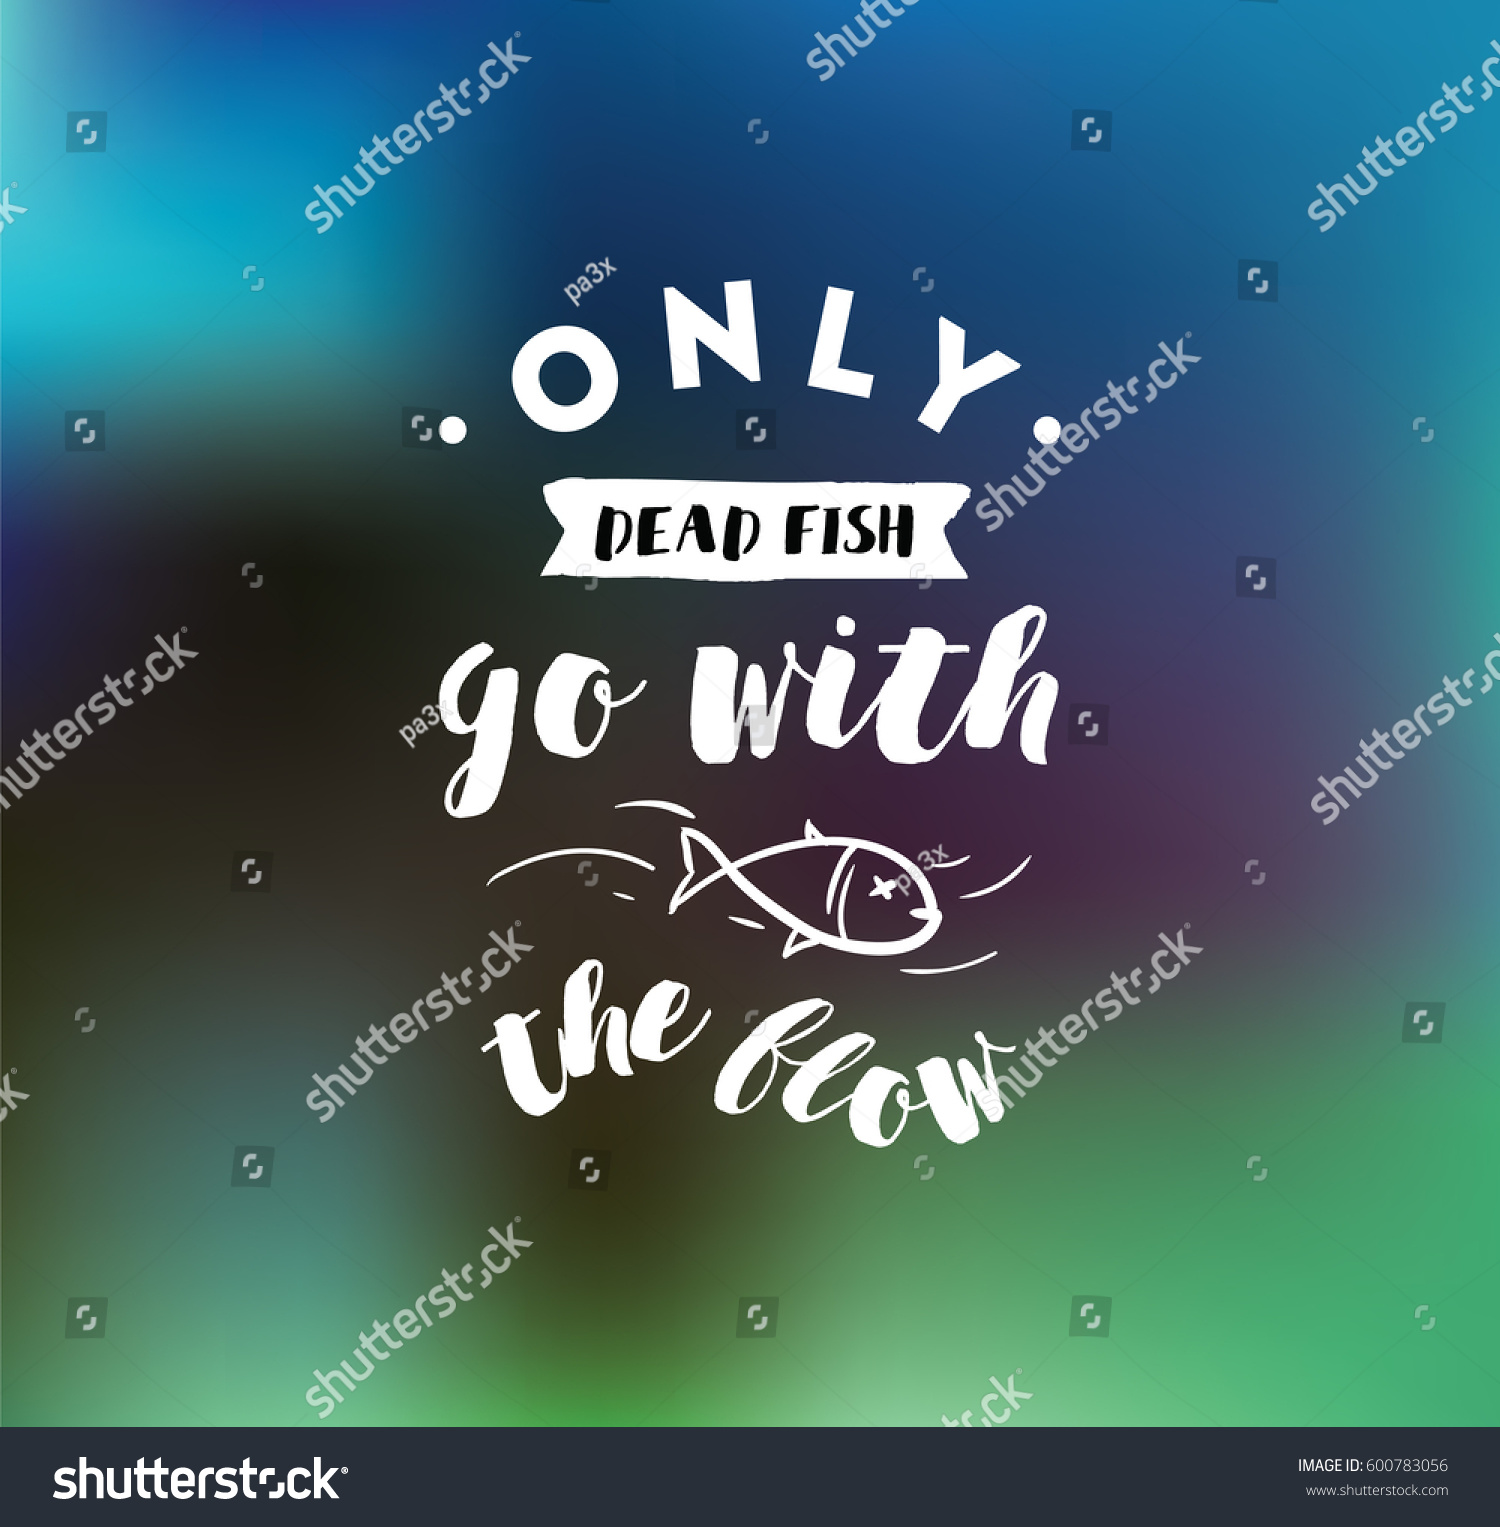 Go With The Flow Quotes Only Dead Fish Go Flow Inspirational Stock Vector 600783056